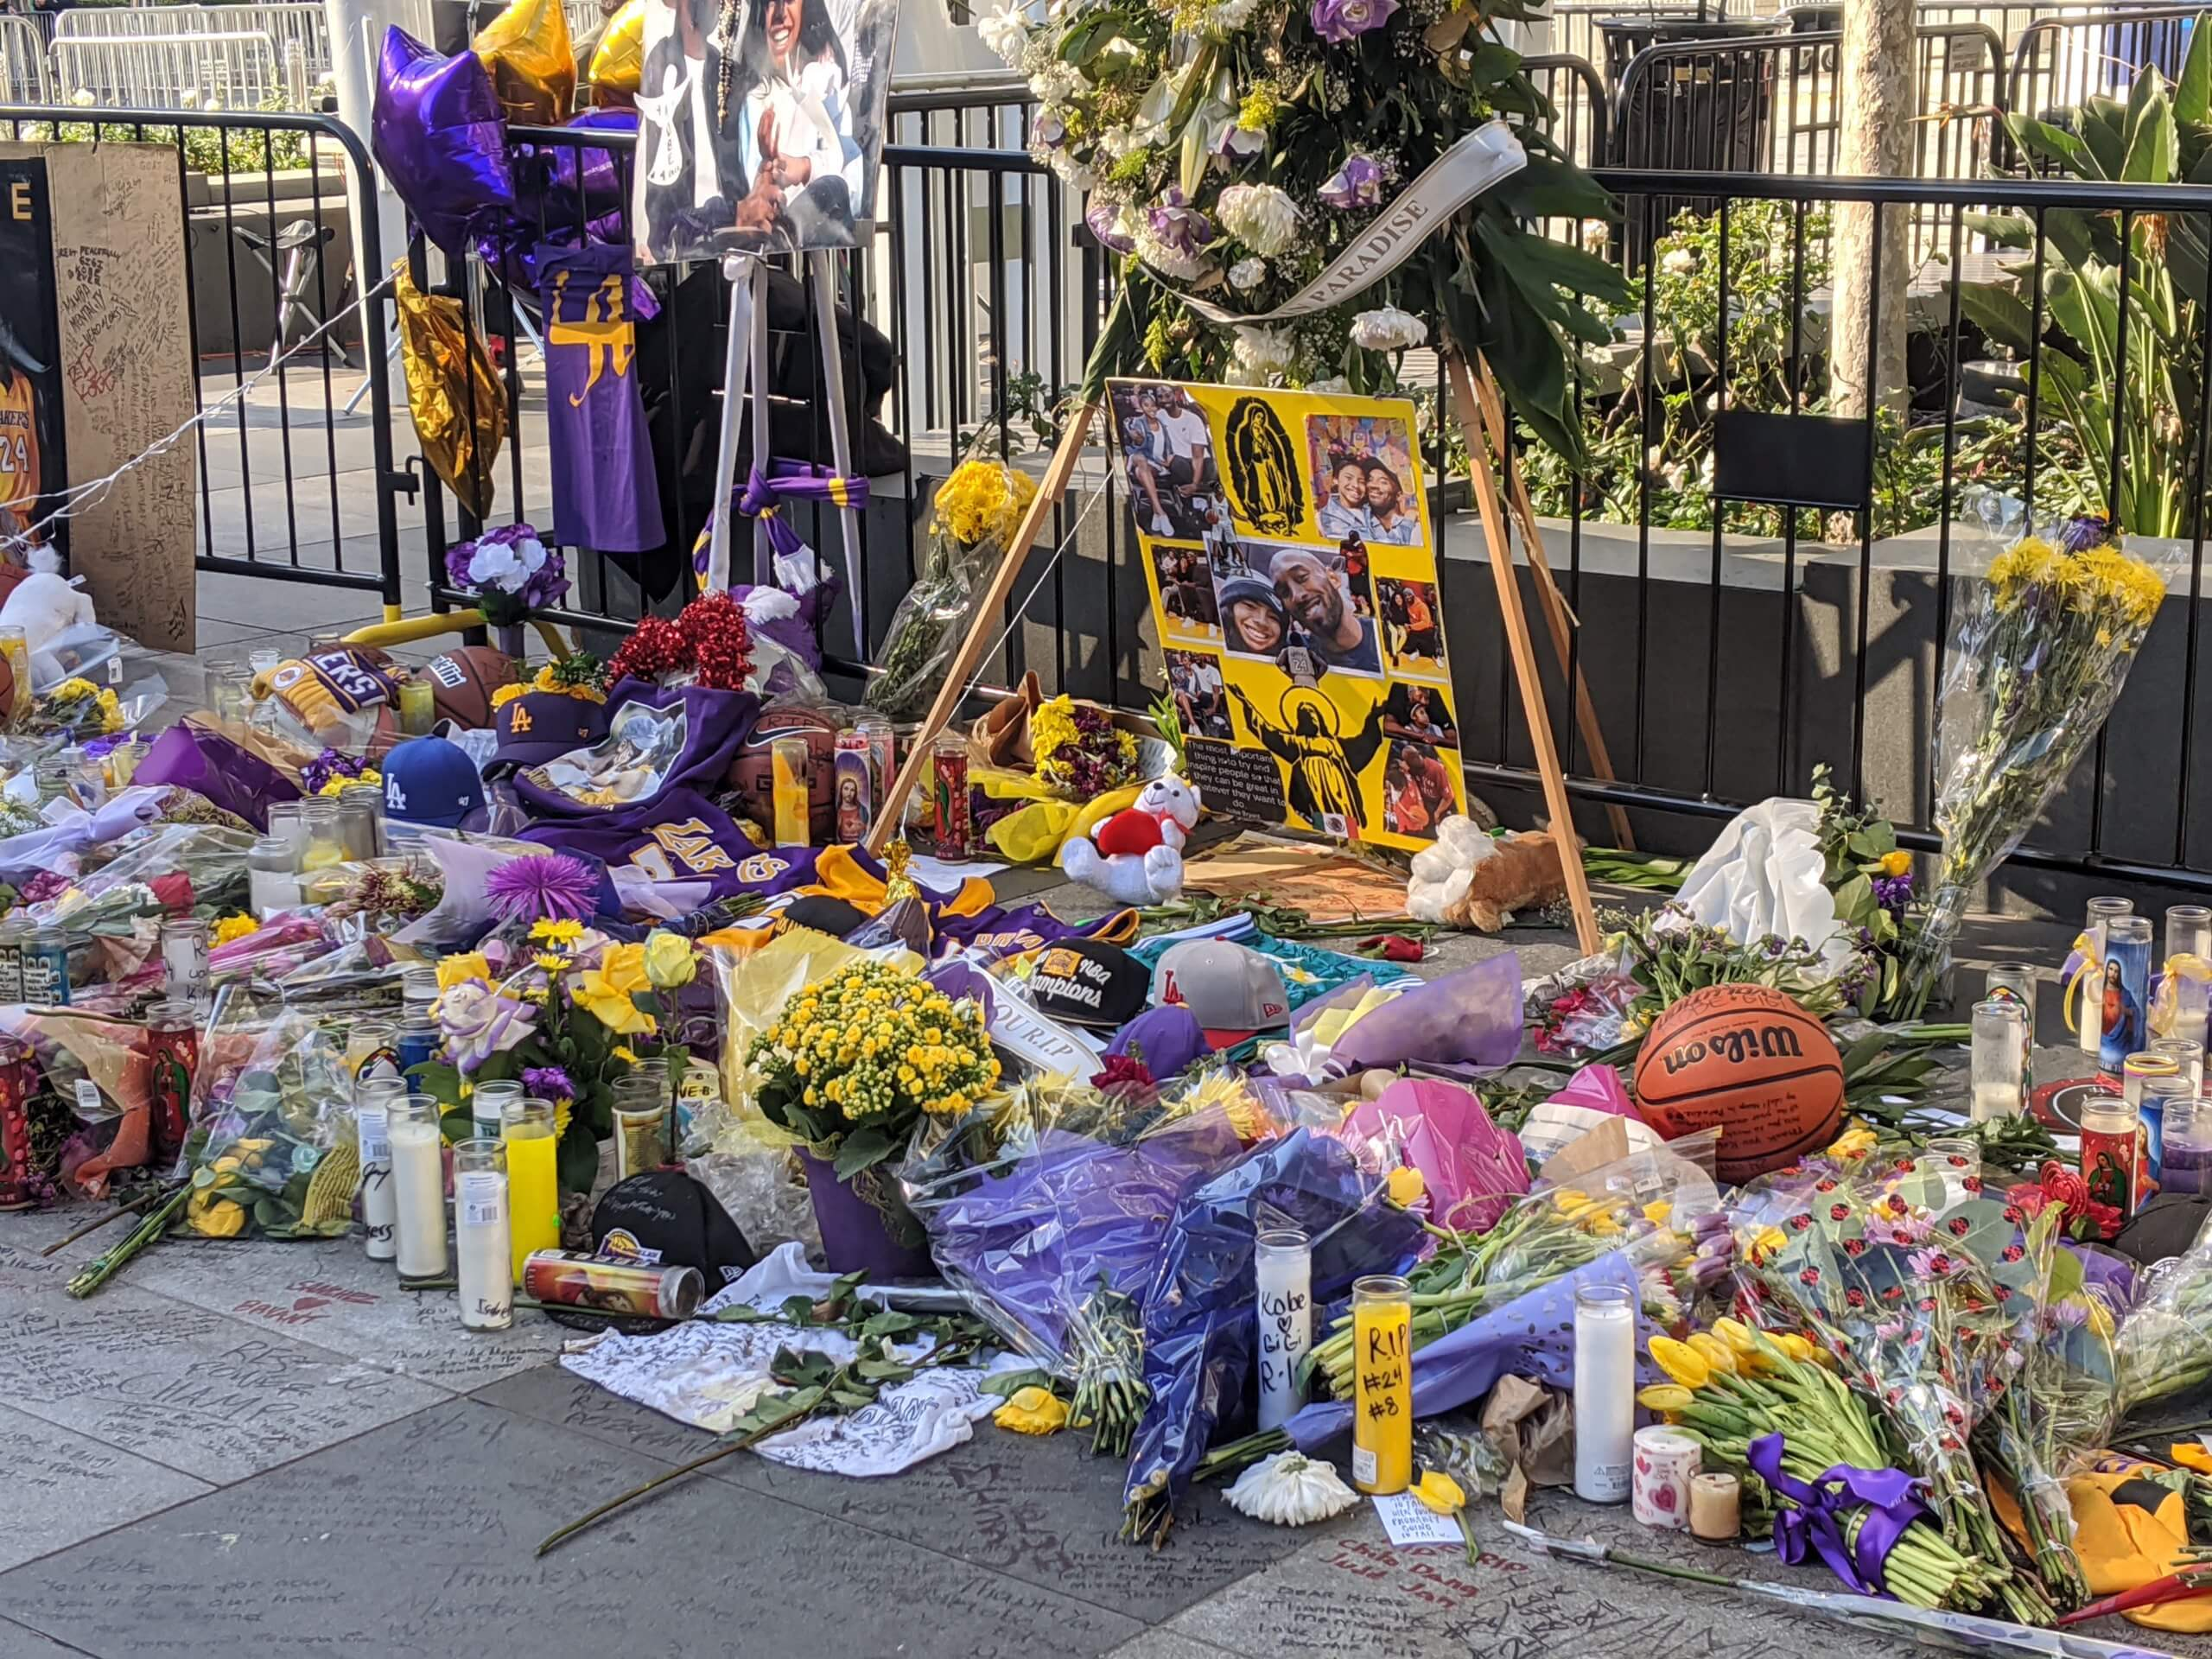 The Los Angeles Lakers' colors, purple and gold, abound in flowers, candles and mementos that were laid on sidewalks outside the Staples Center to honor the late basketball star Kobe Bryant. (Photo Courtesy of Erica Jousan)